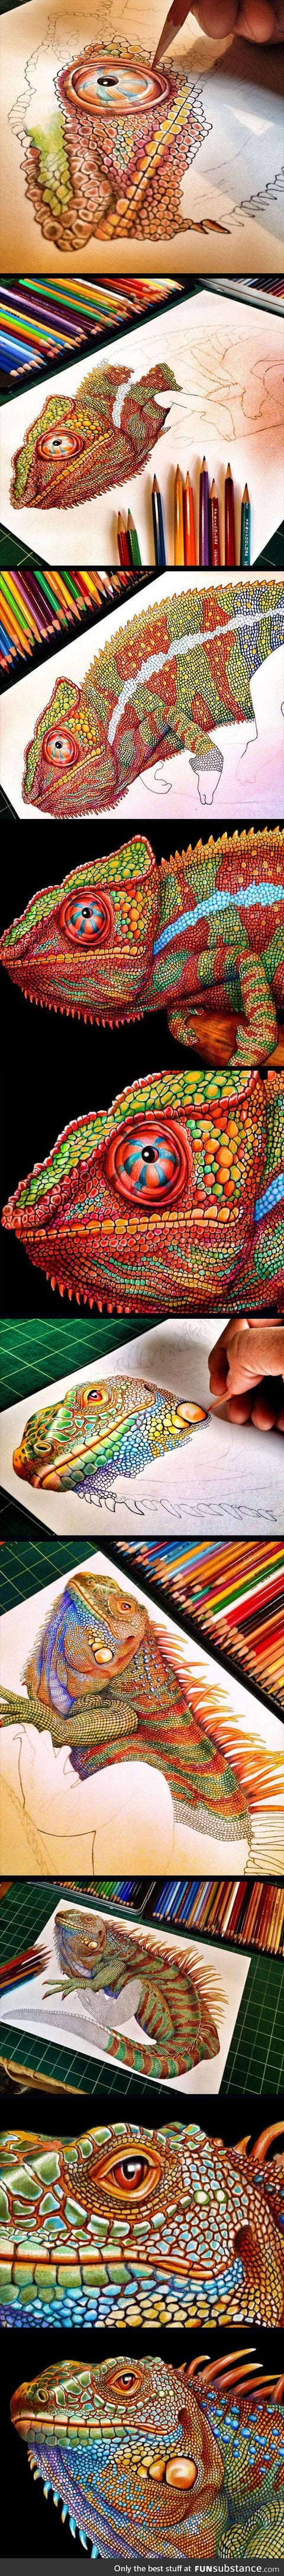 Incredibly Detailed Drawing Of A Chameleon Using Color Pencils